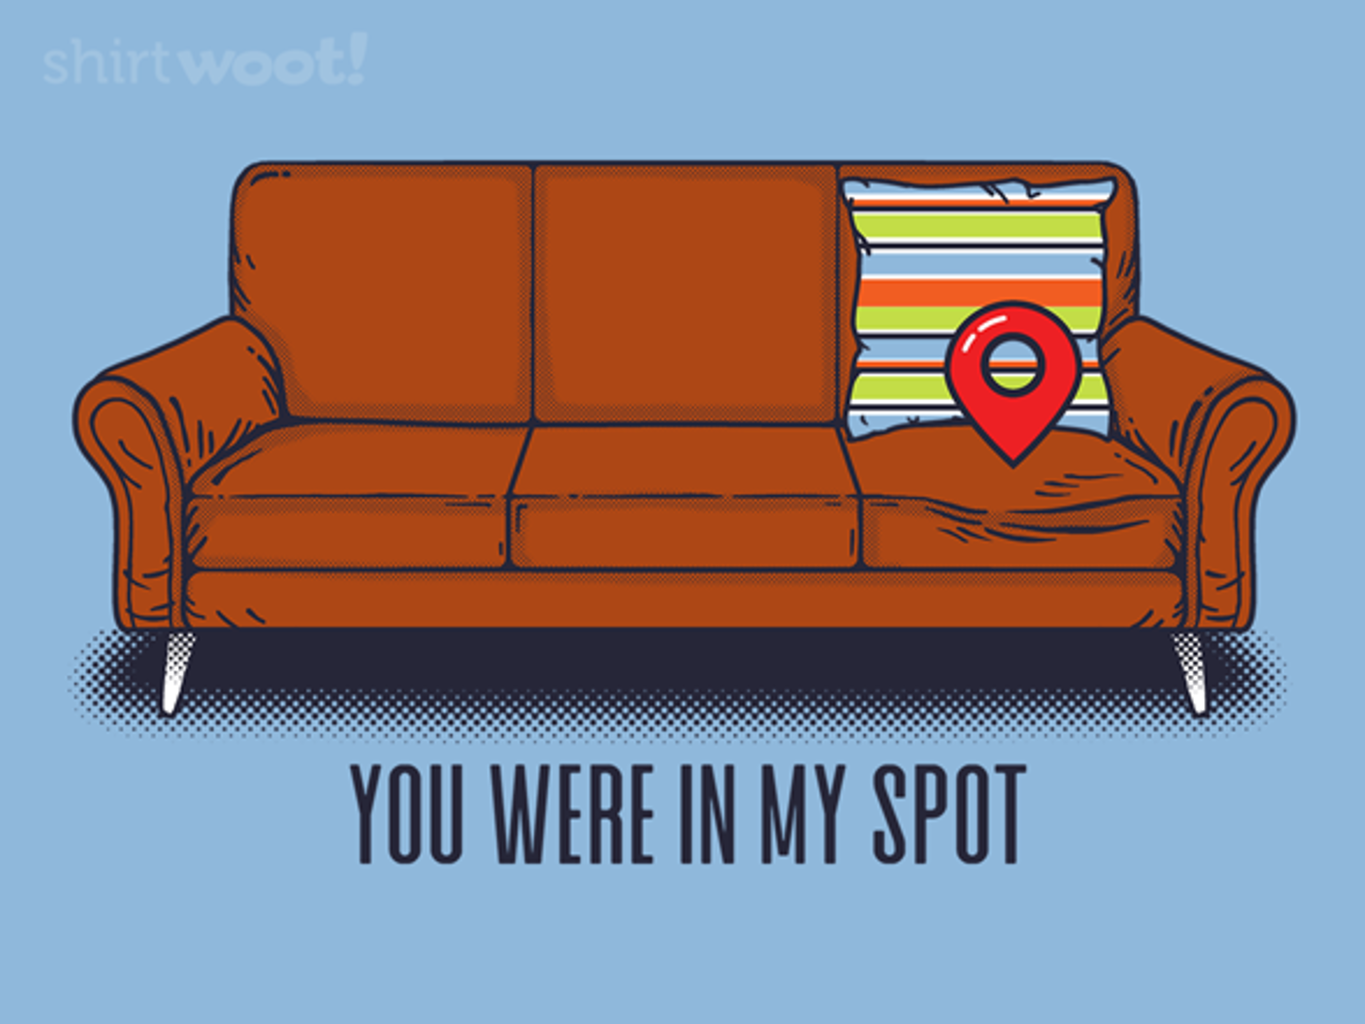 Woot!: You Were in My Spot